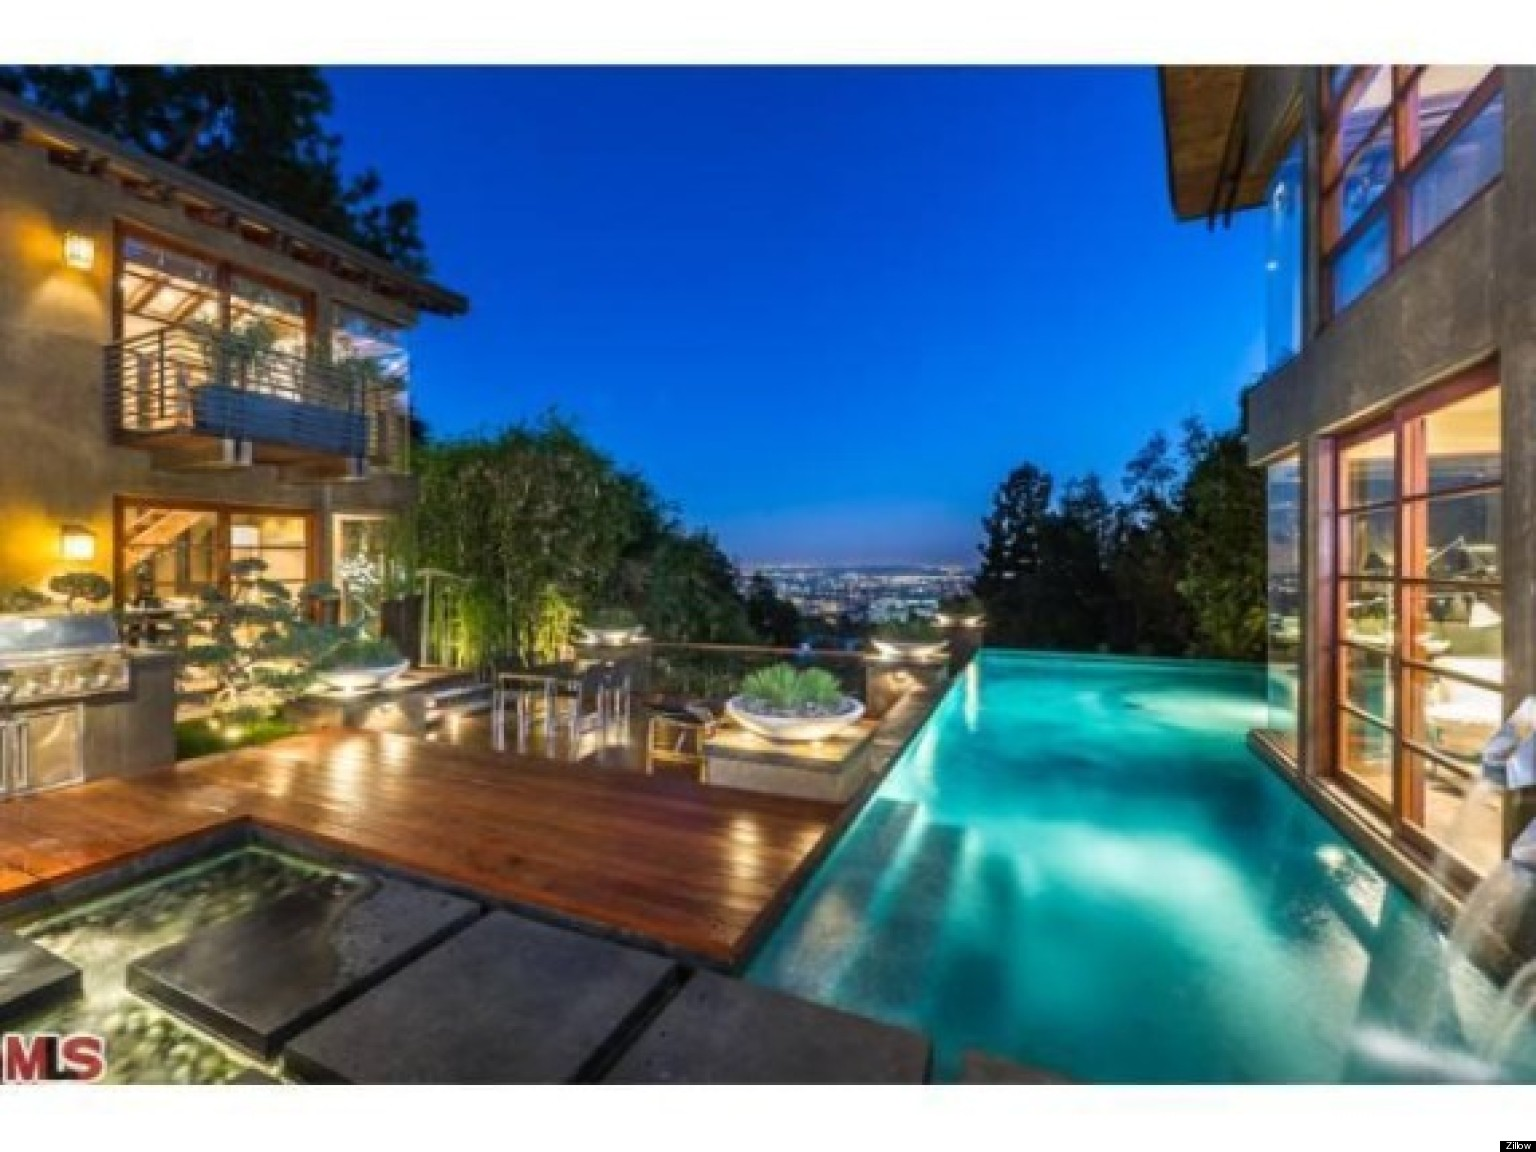 Calvin harris 39 house nestled in the hollywood hills for Calvin house